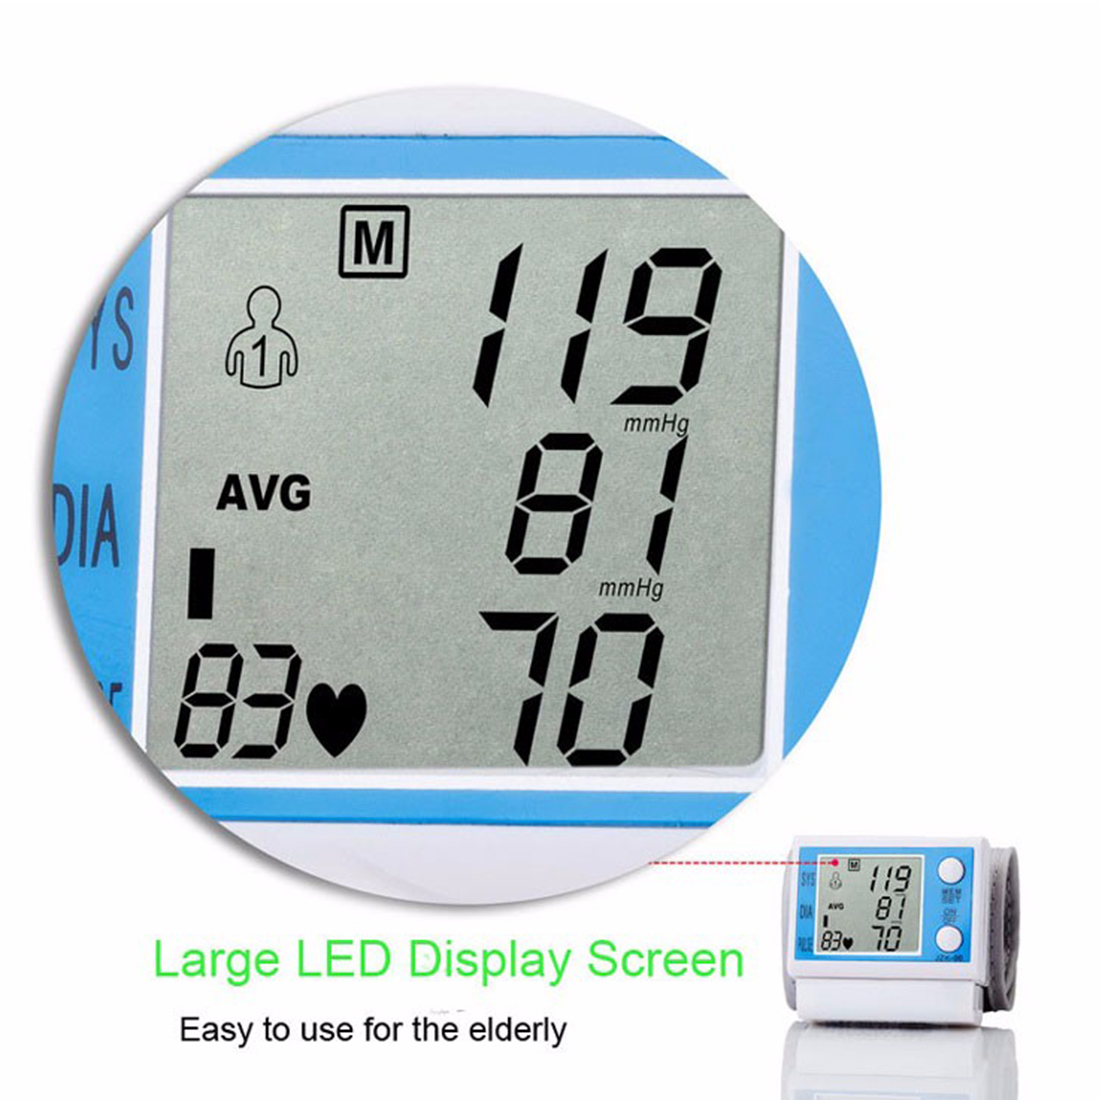 Householde Health Care Automatic Wrist Blood Pressure Monitor Digital LCD Wrist Cuff Blood Pressure Meter 9